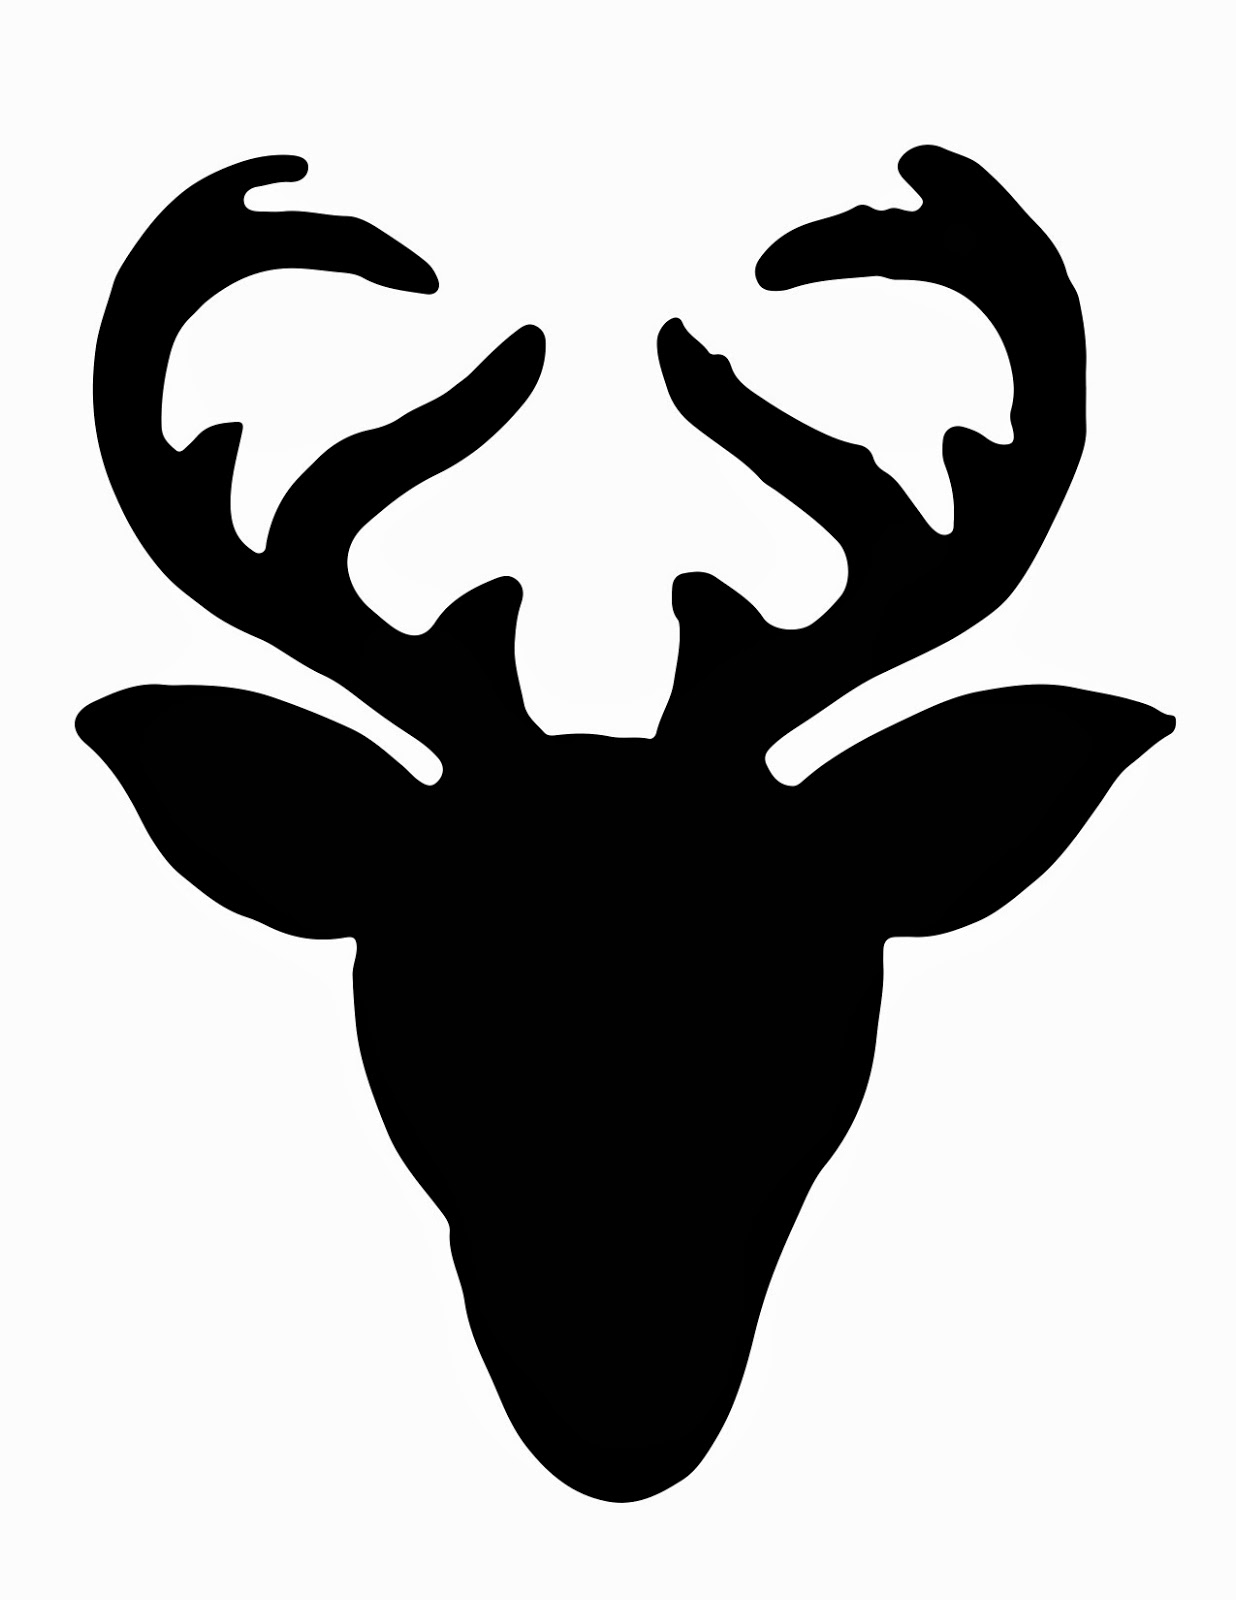 1236x1600 No Sew Deer Head Silhouette Sweater Less Than Perfect Life